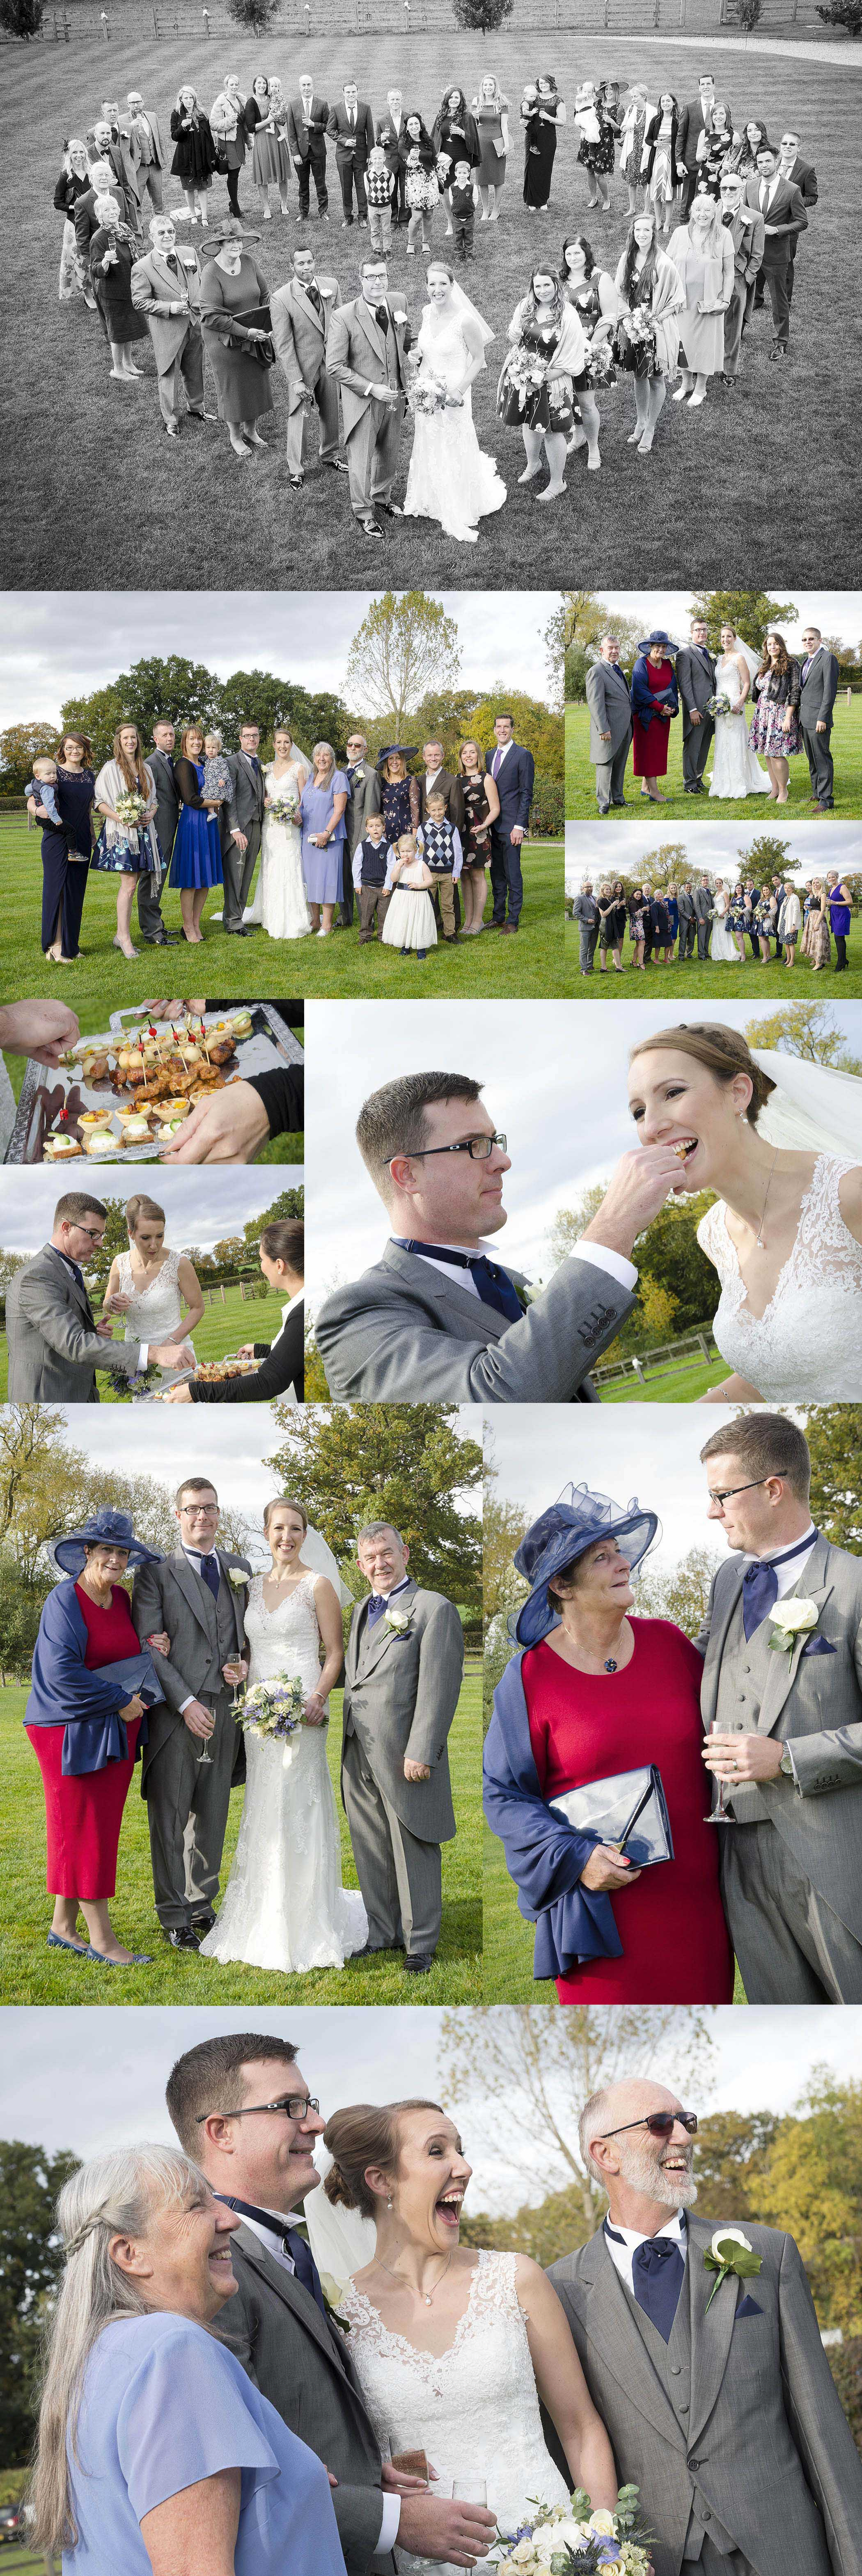 Professional photographer, Wedding Photography at Manor Hill House